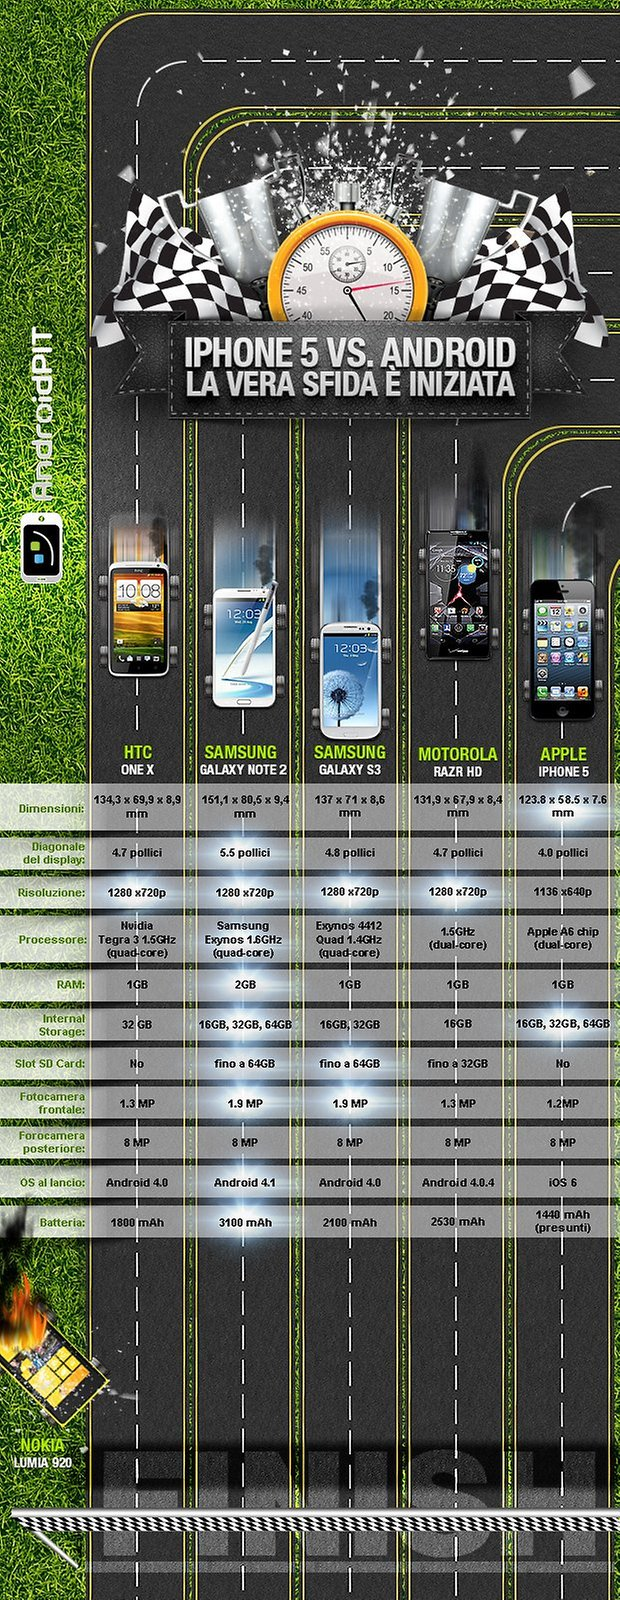 iphone 5 contro android